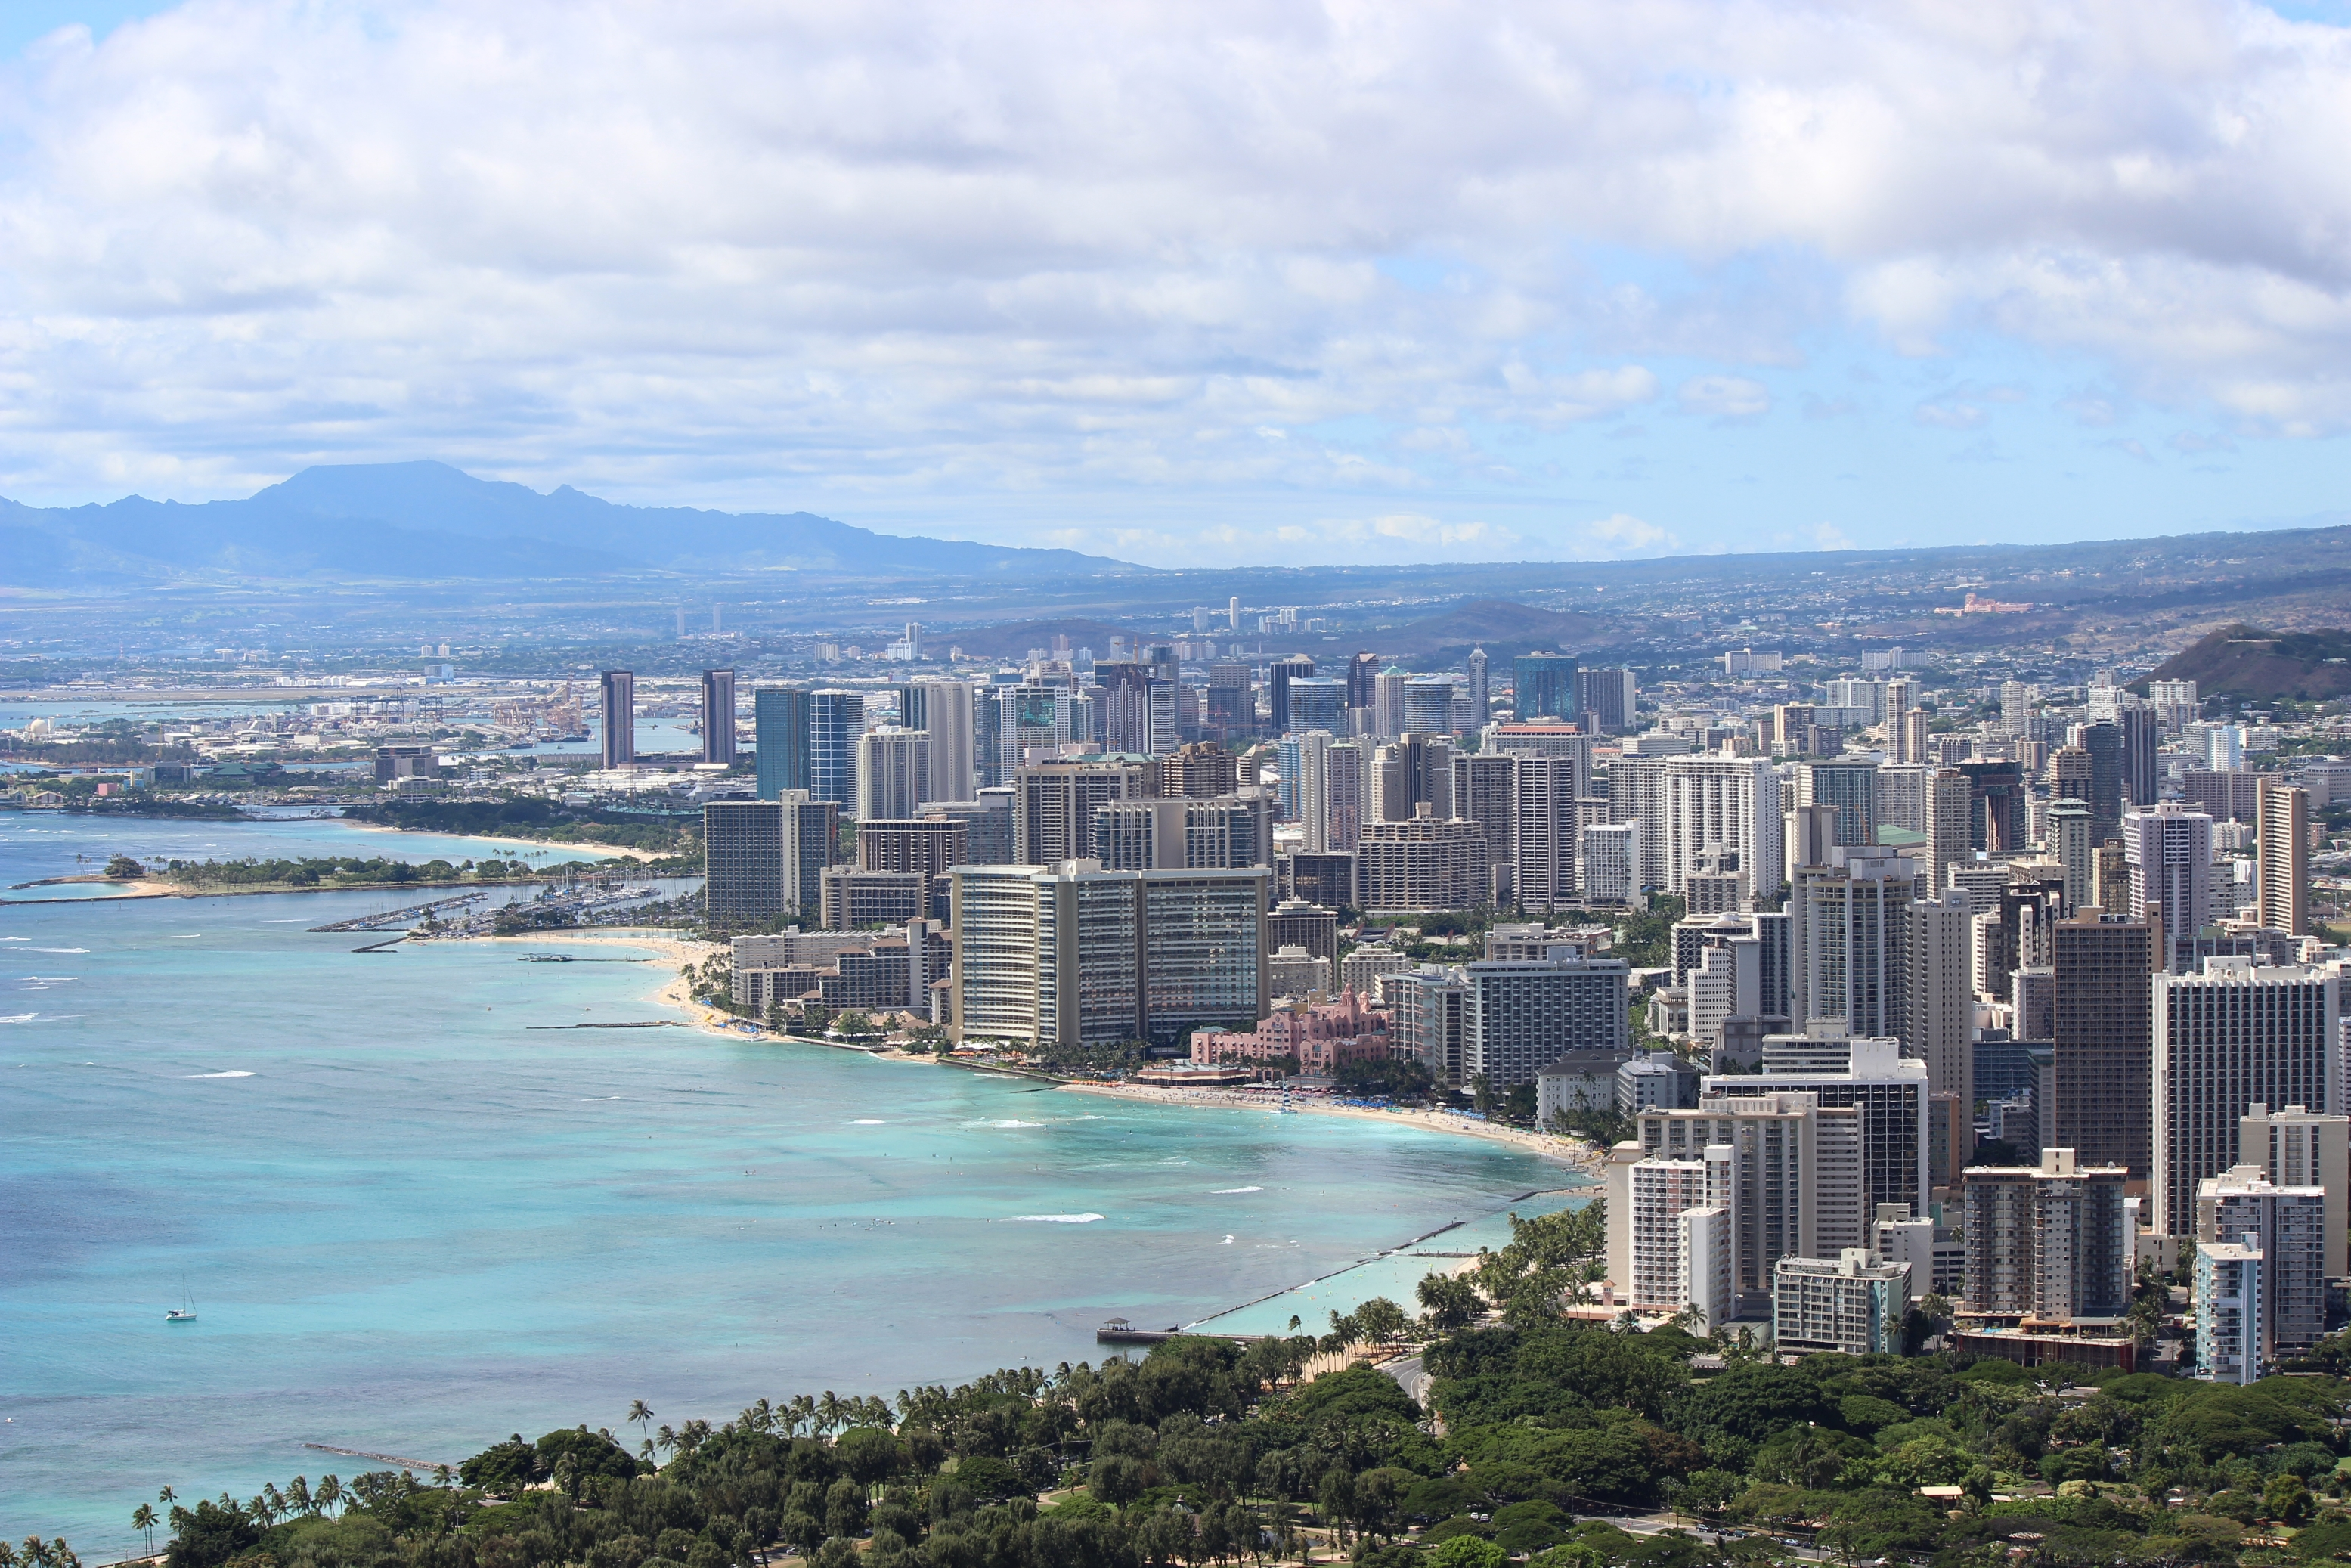 View of Waikiki from Diamondhead